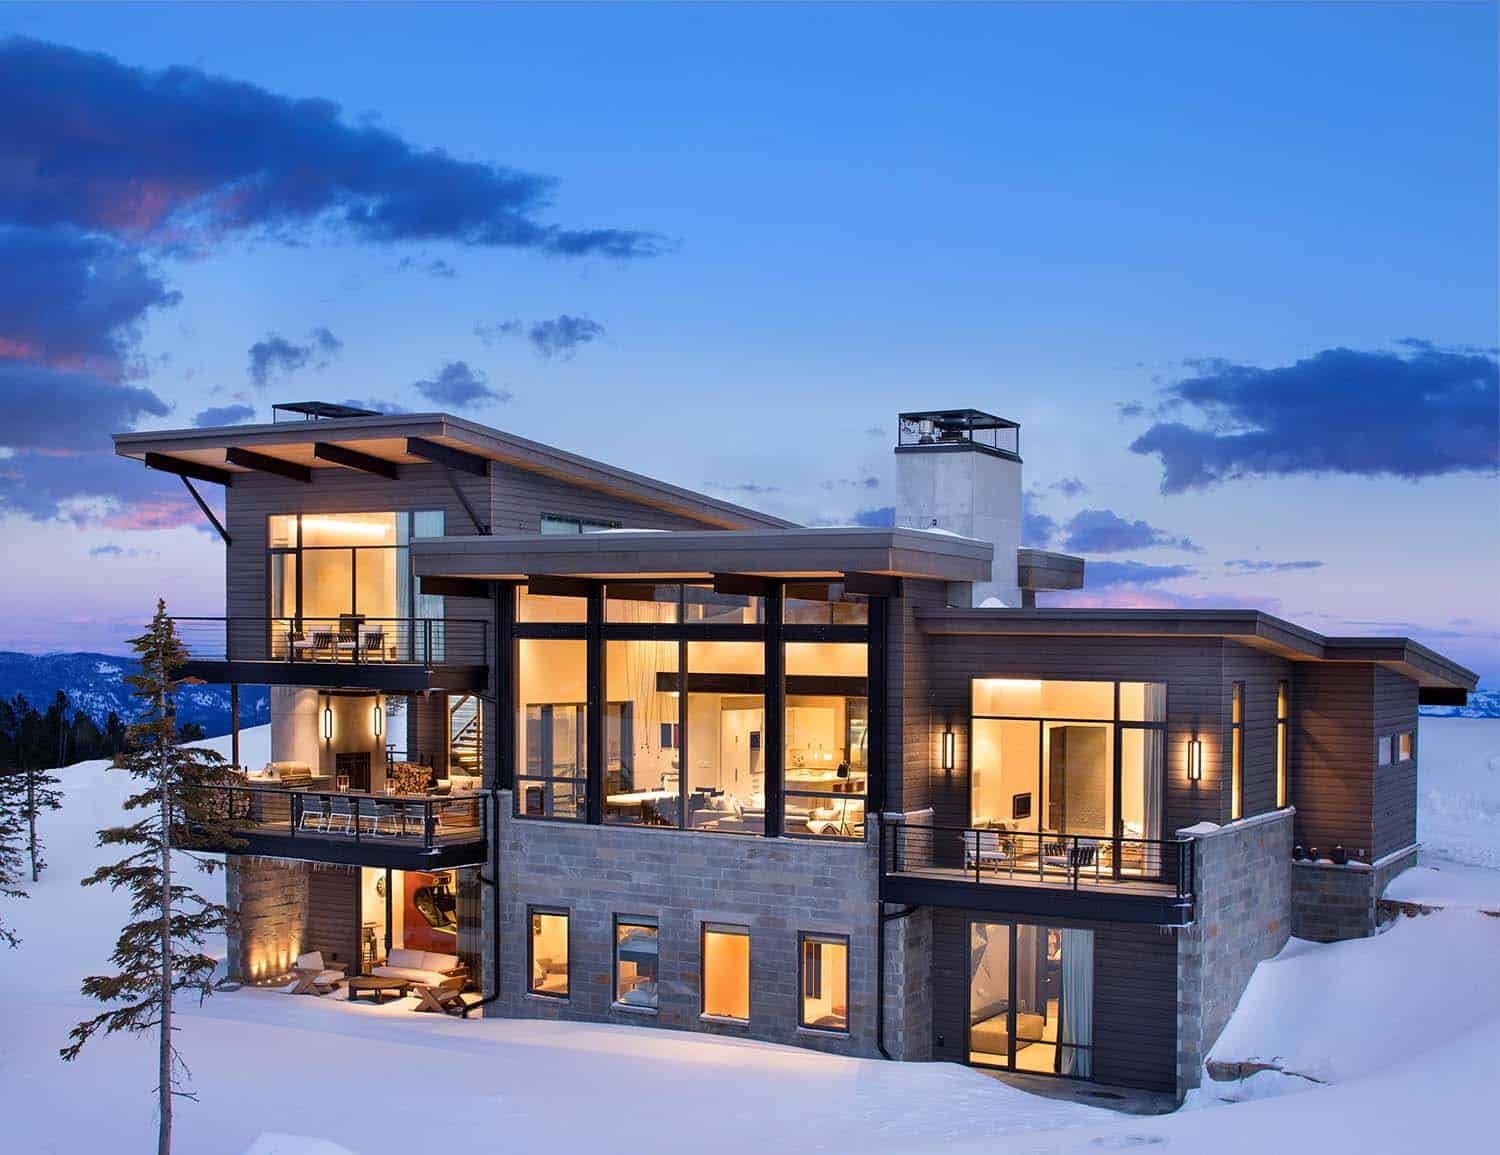 Modern mountain home boasts chic and stylish living in montana for Home architectures